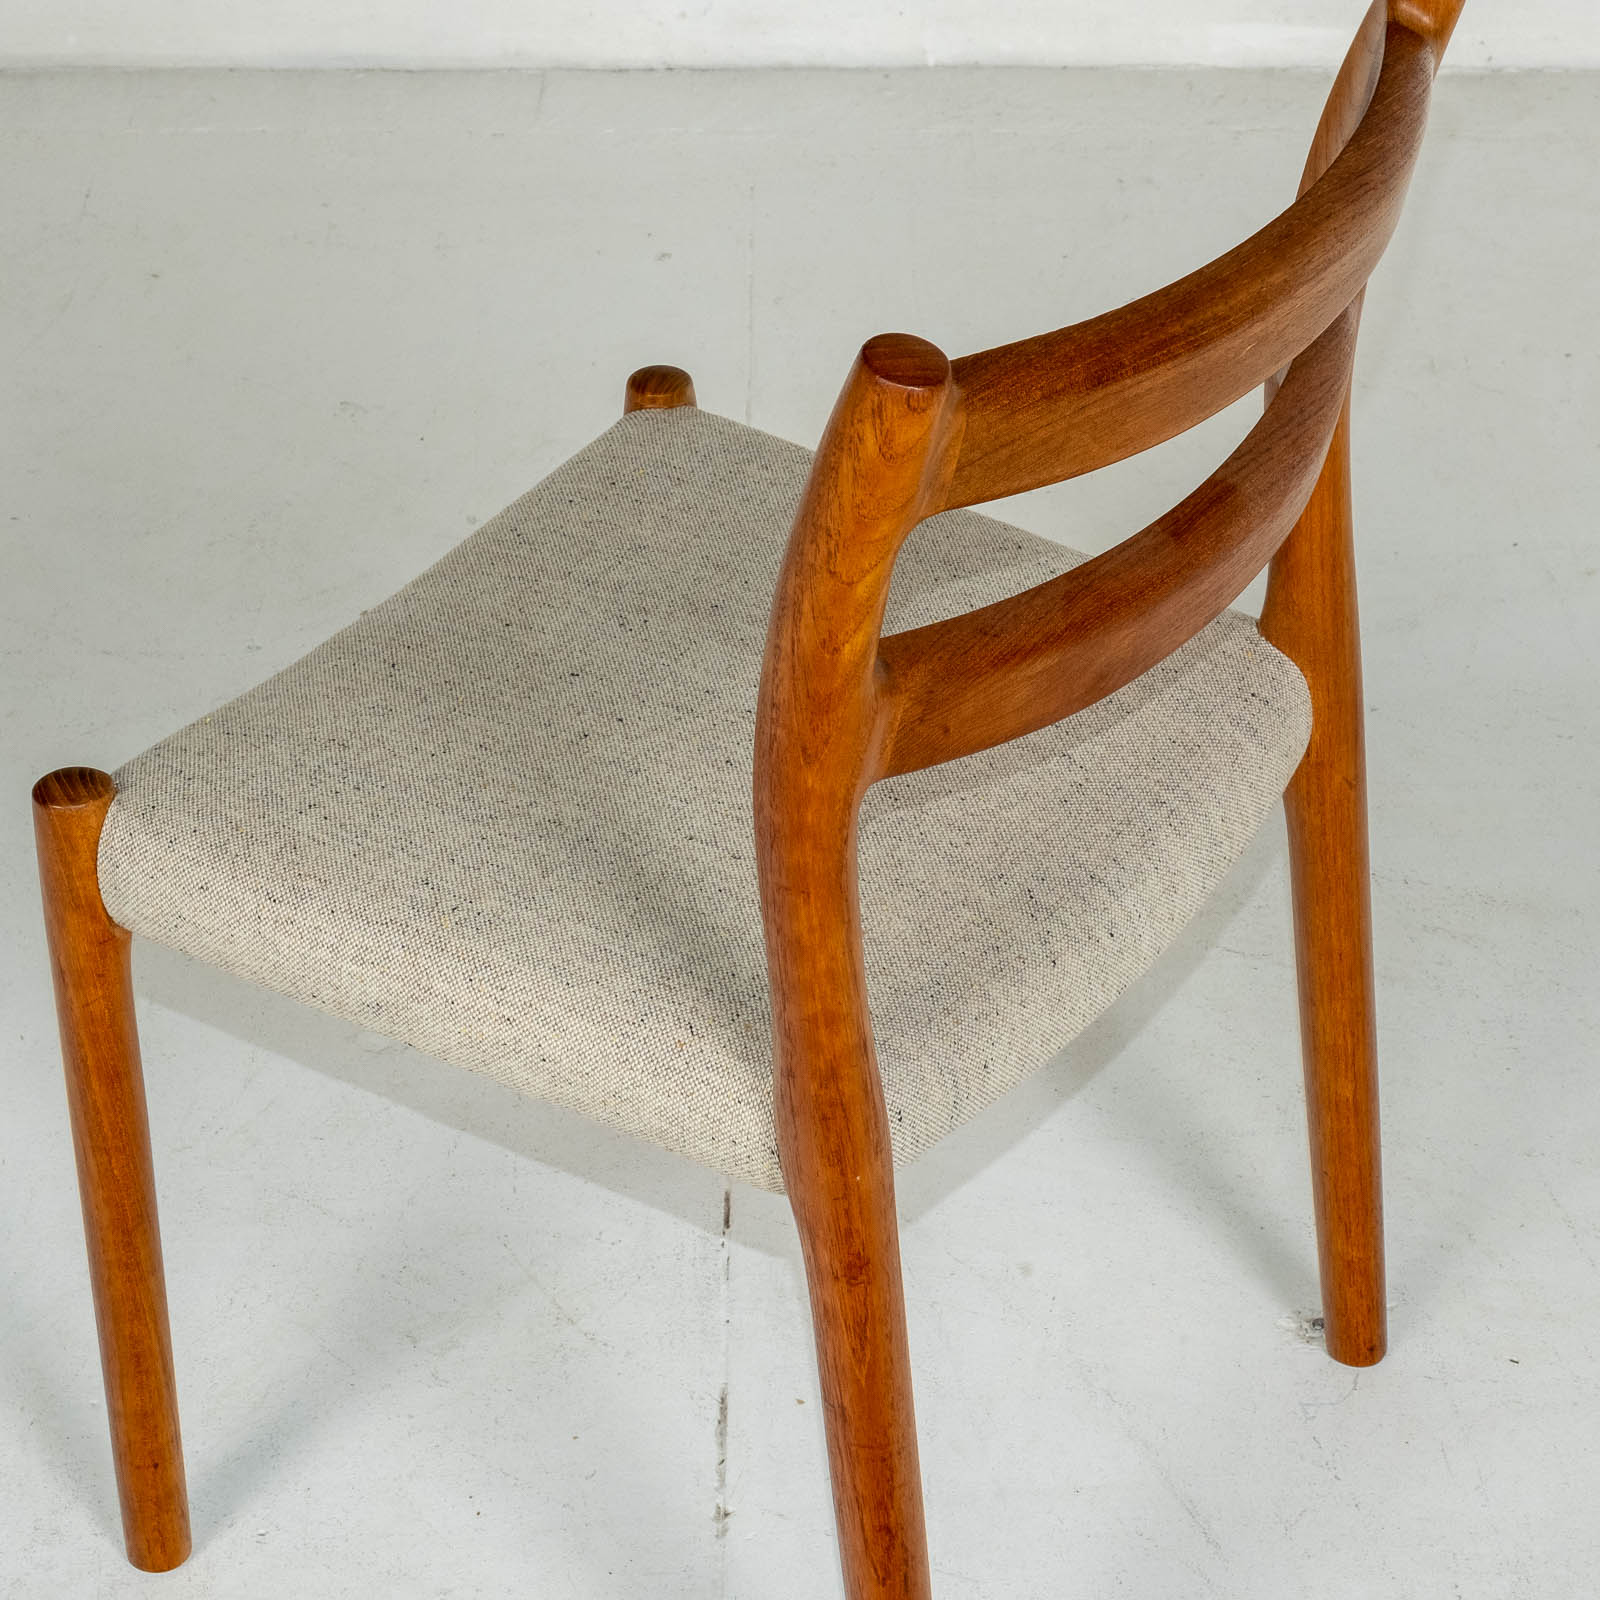 Set Of Four Ladder Back Dining Chairs By Niels Moller In Teak, 1960s, Denmark3